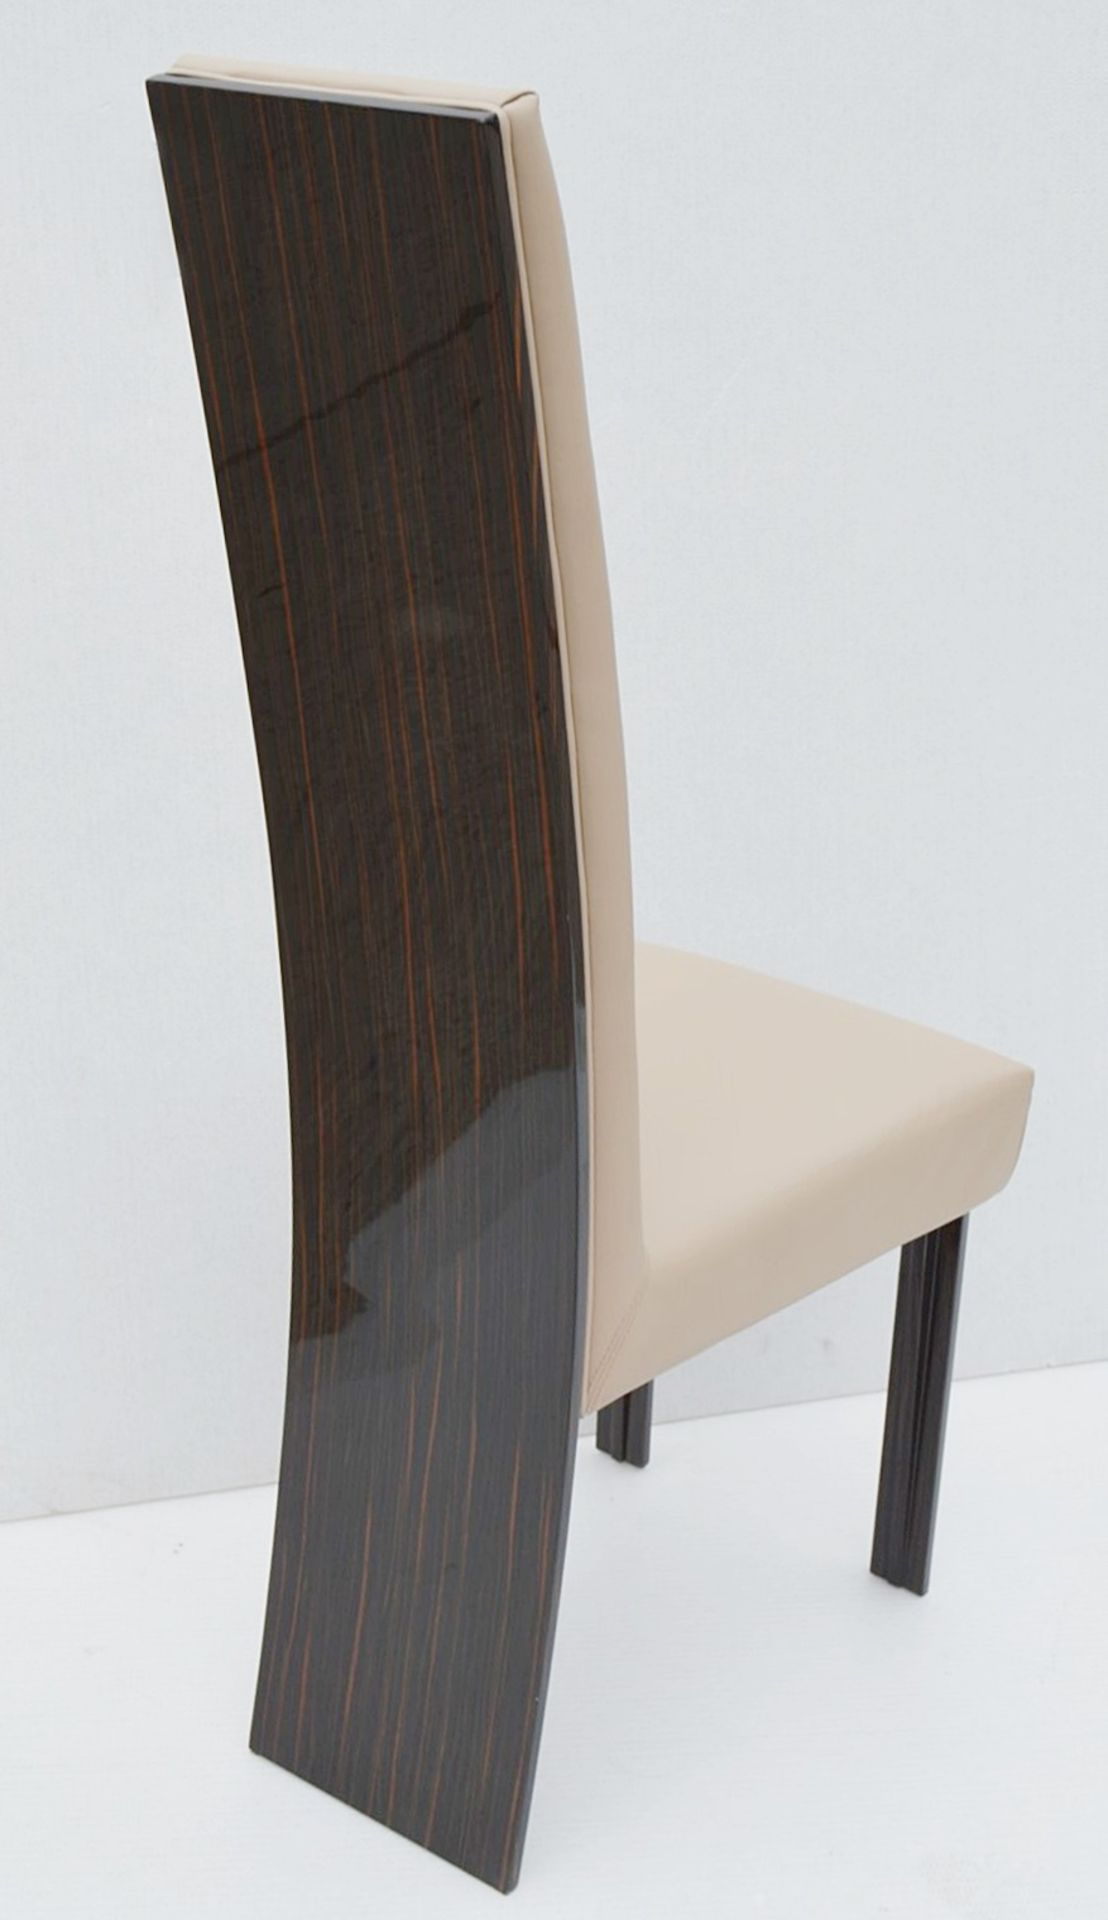 A Pair Of REFLEX 'New York-2' Designer Leather Upholstered High-back Chairs - Original RRP £2,578 - Image 2 of 8